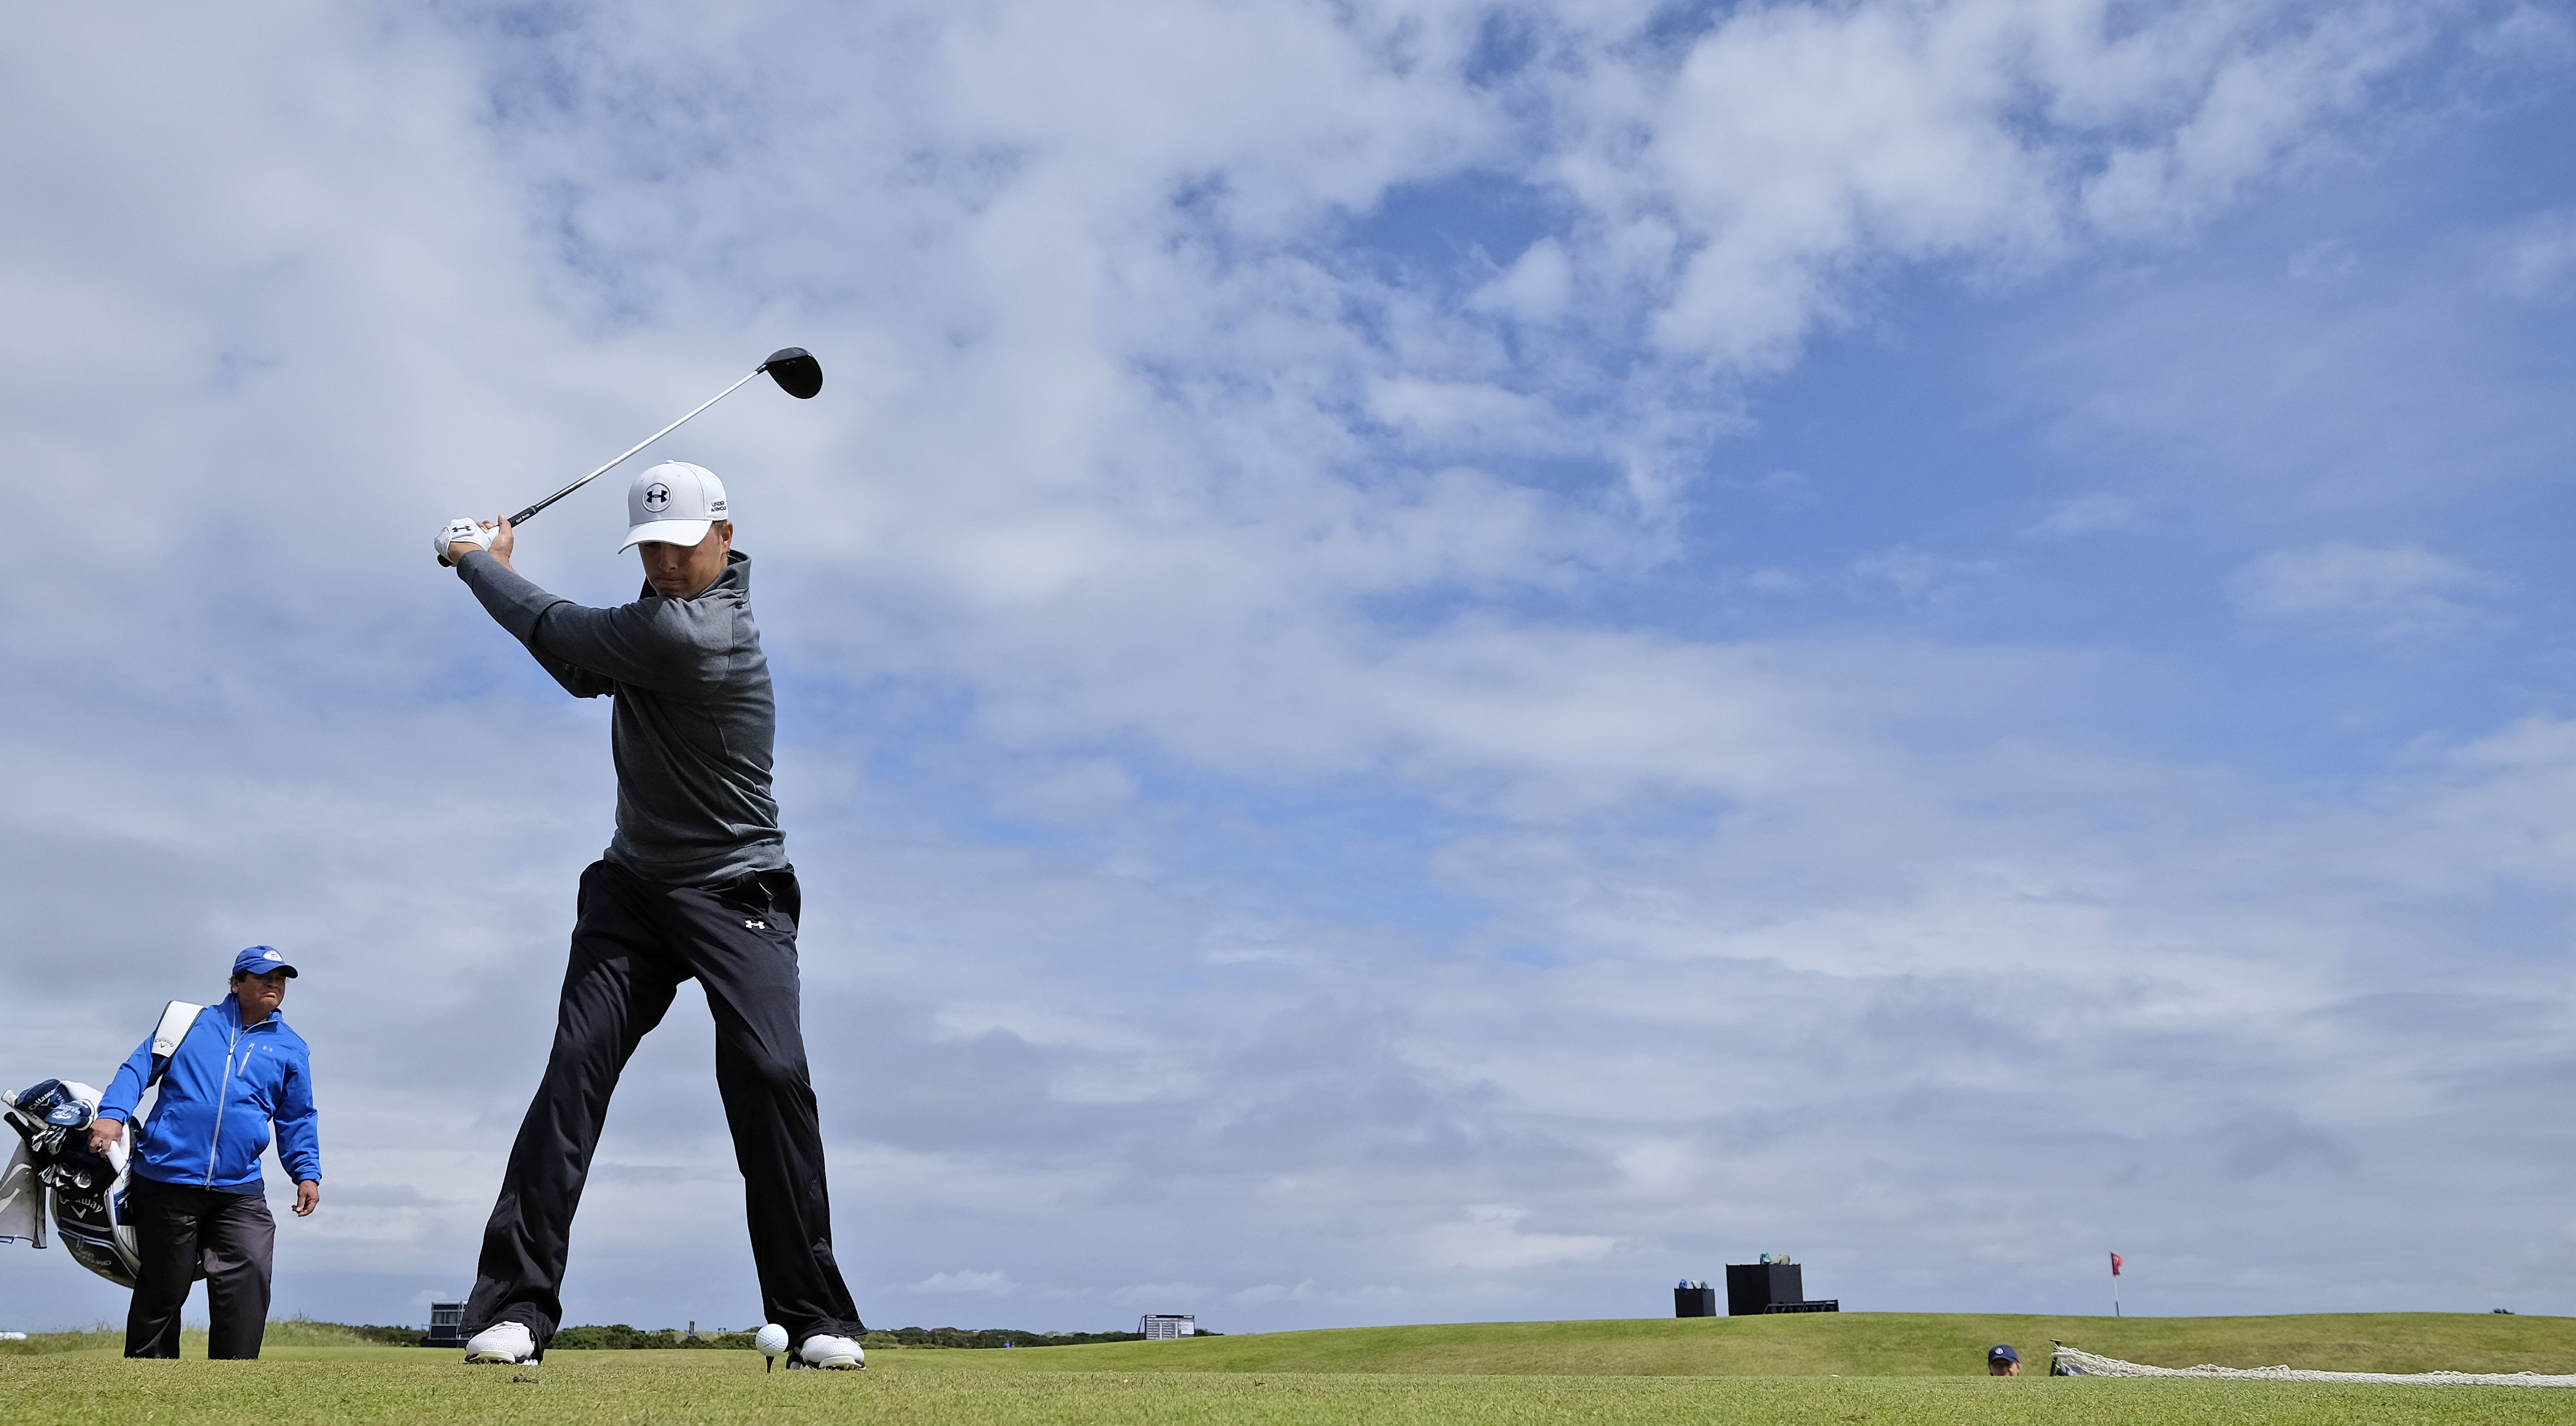 United States' Jordan Spieth drives a ball from the 12th tee during a practice round at the British Open Golf Championship at the Old Course, St. Andrews, Scotland, Wednesday, July 15, 2015. (AP Photo/David J. Phillip)